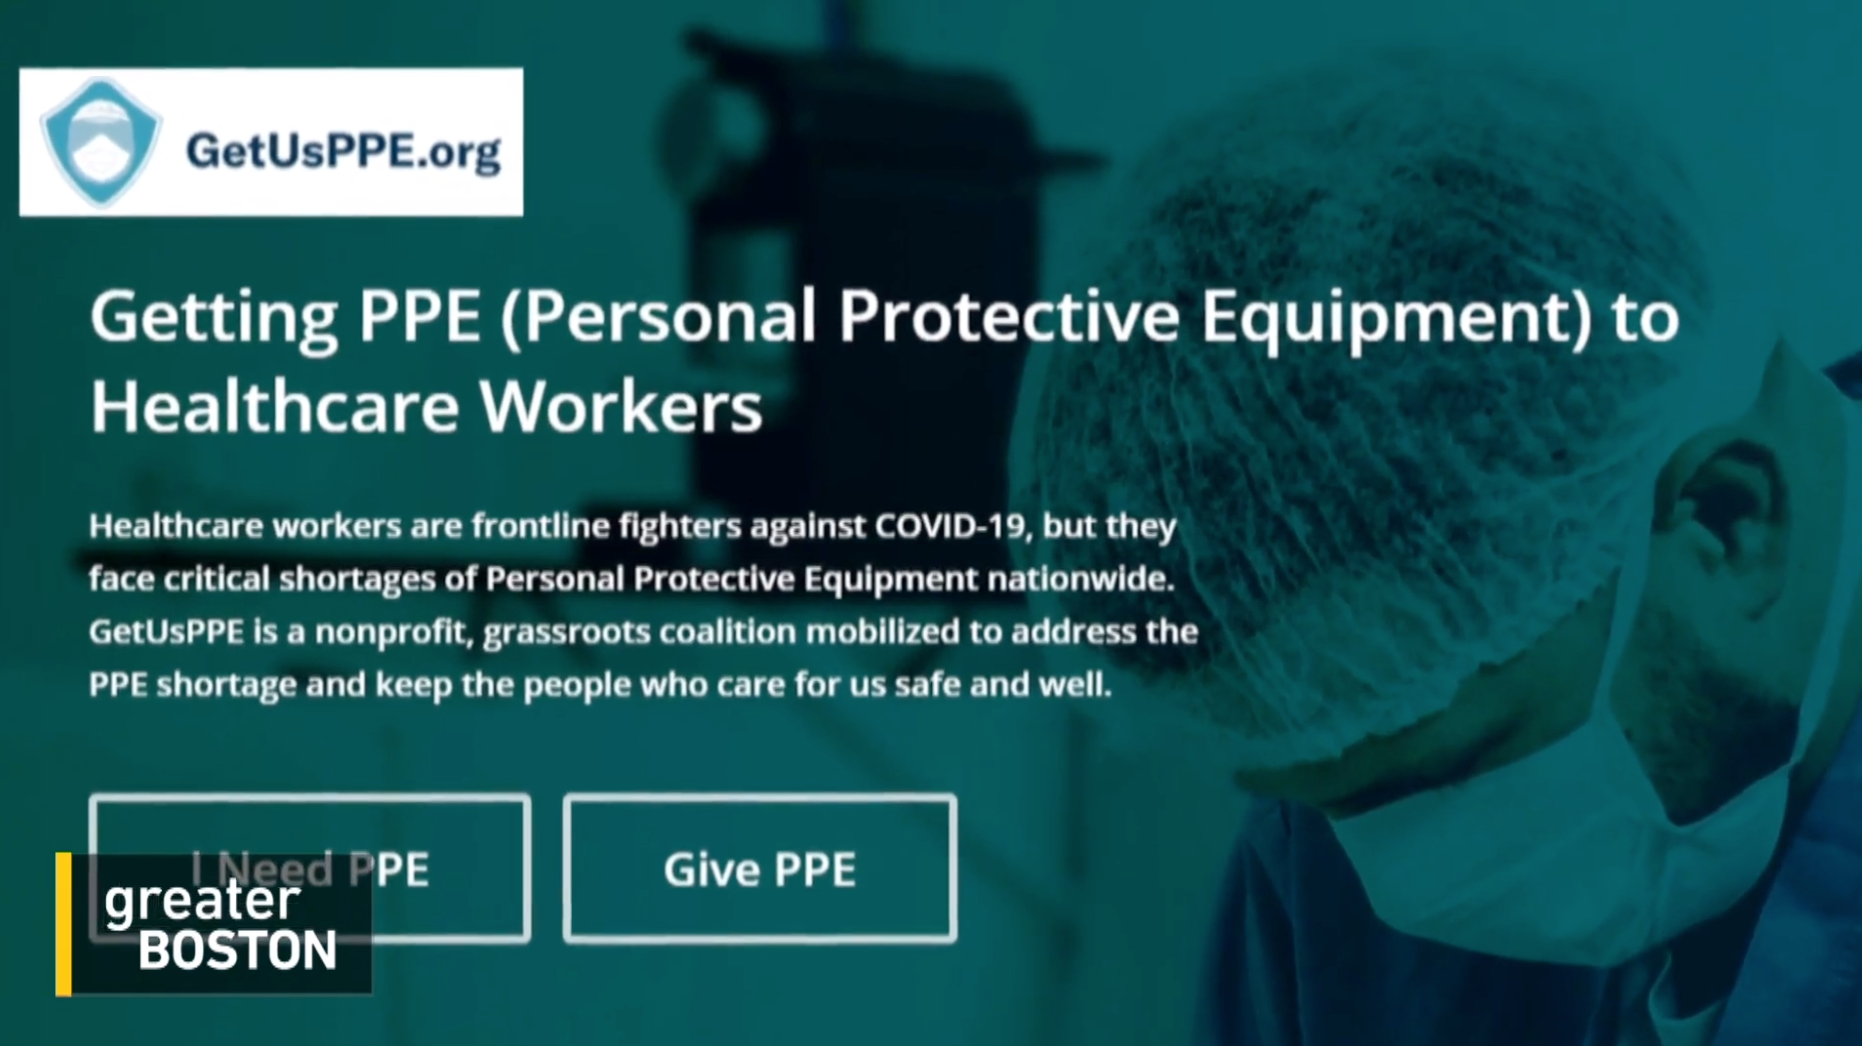 A screenshot of the Get Us PPE website home page